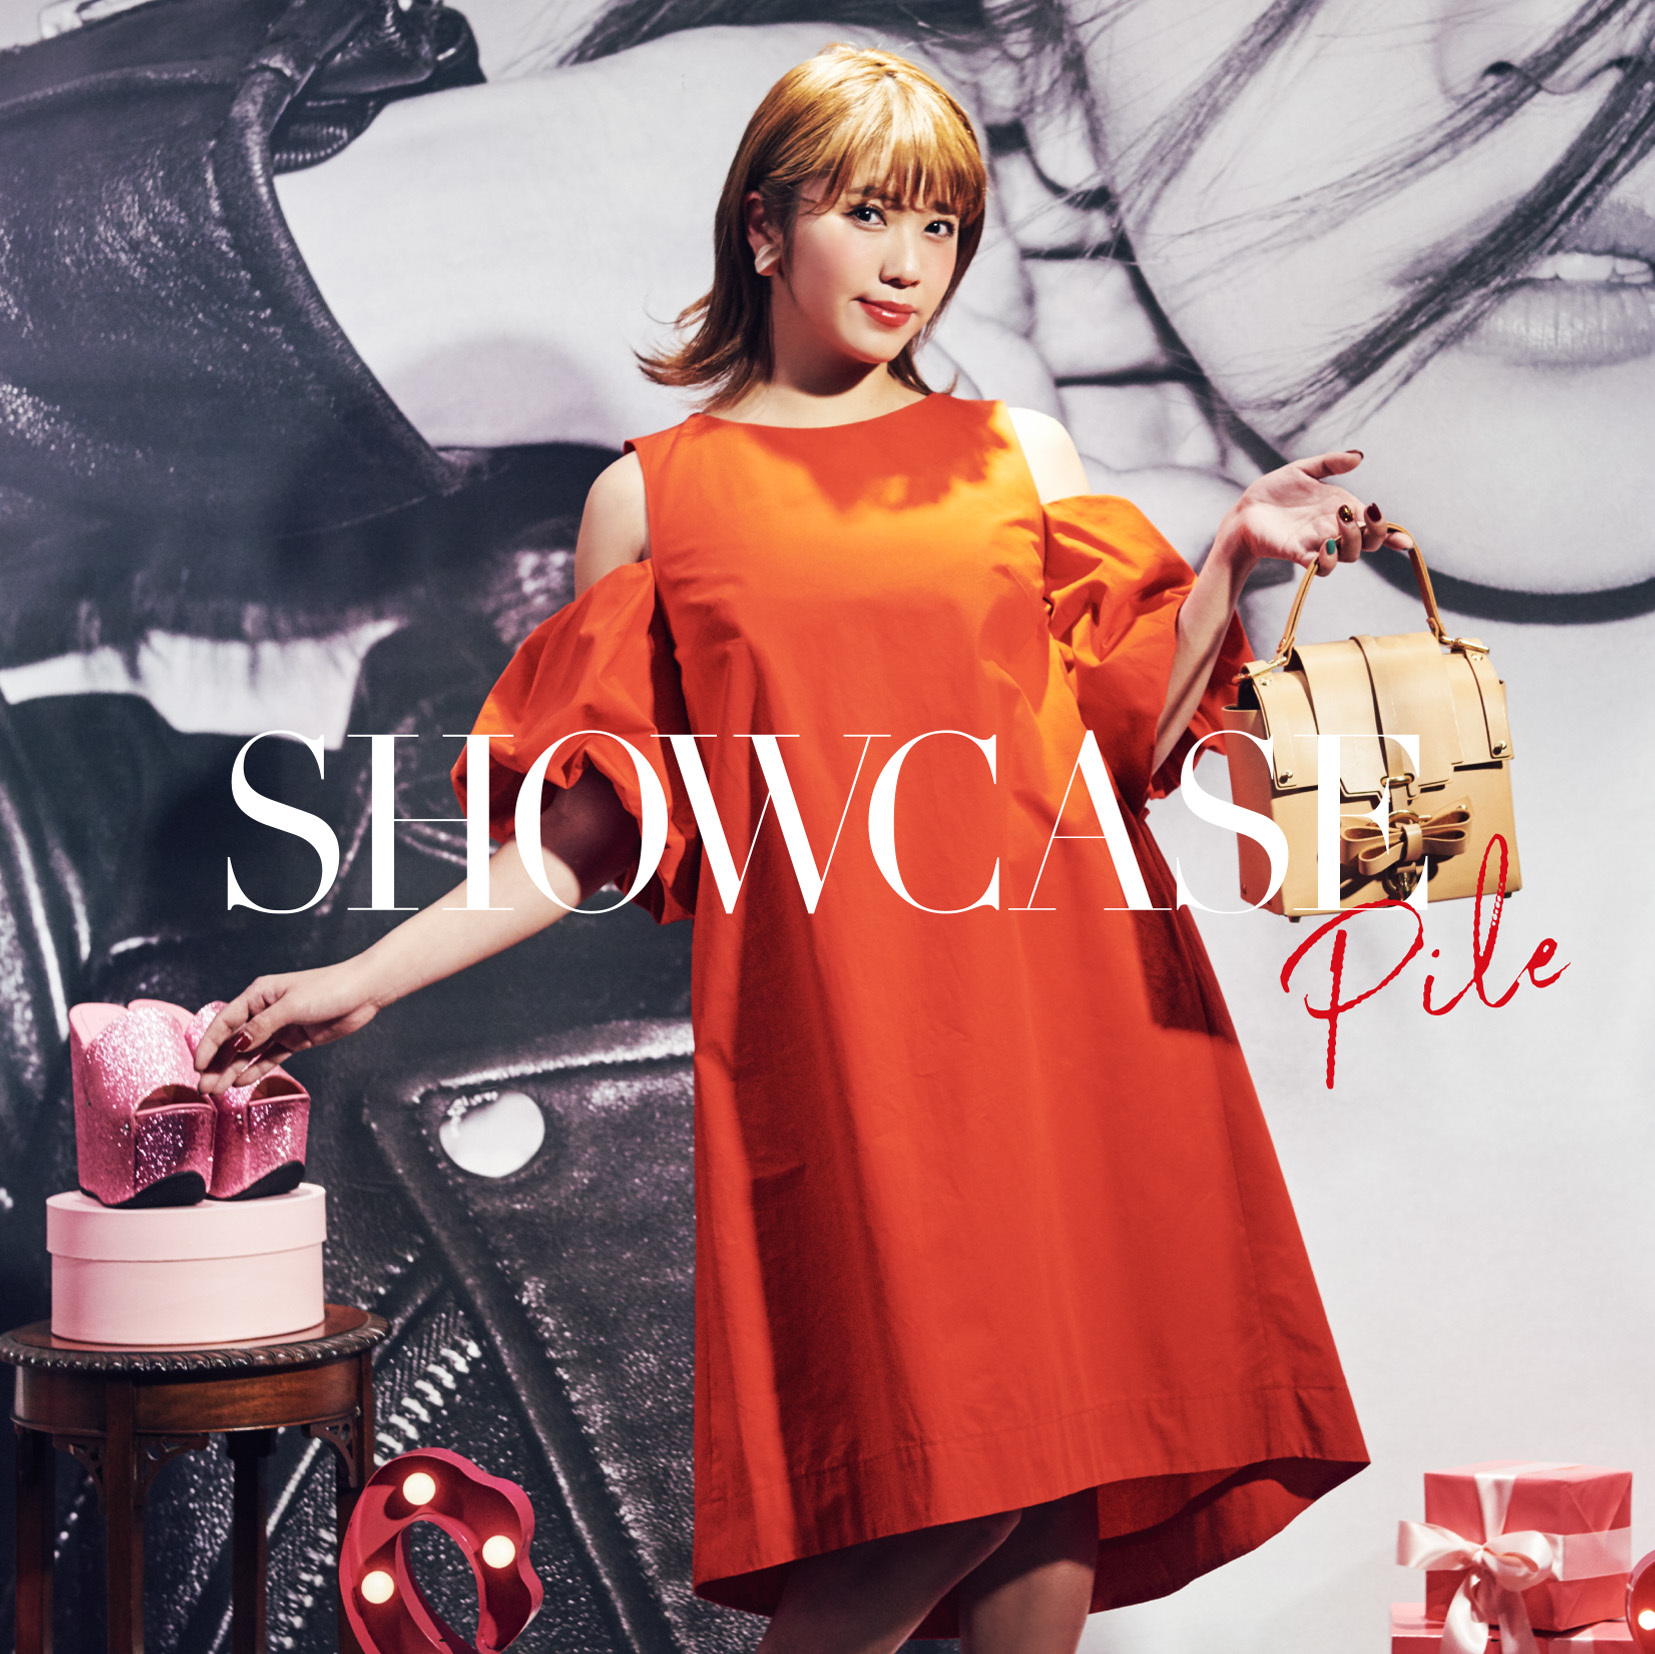 Showcase_shokai_a